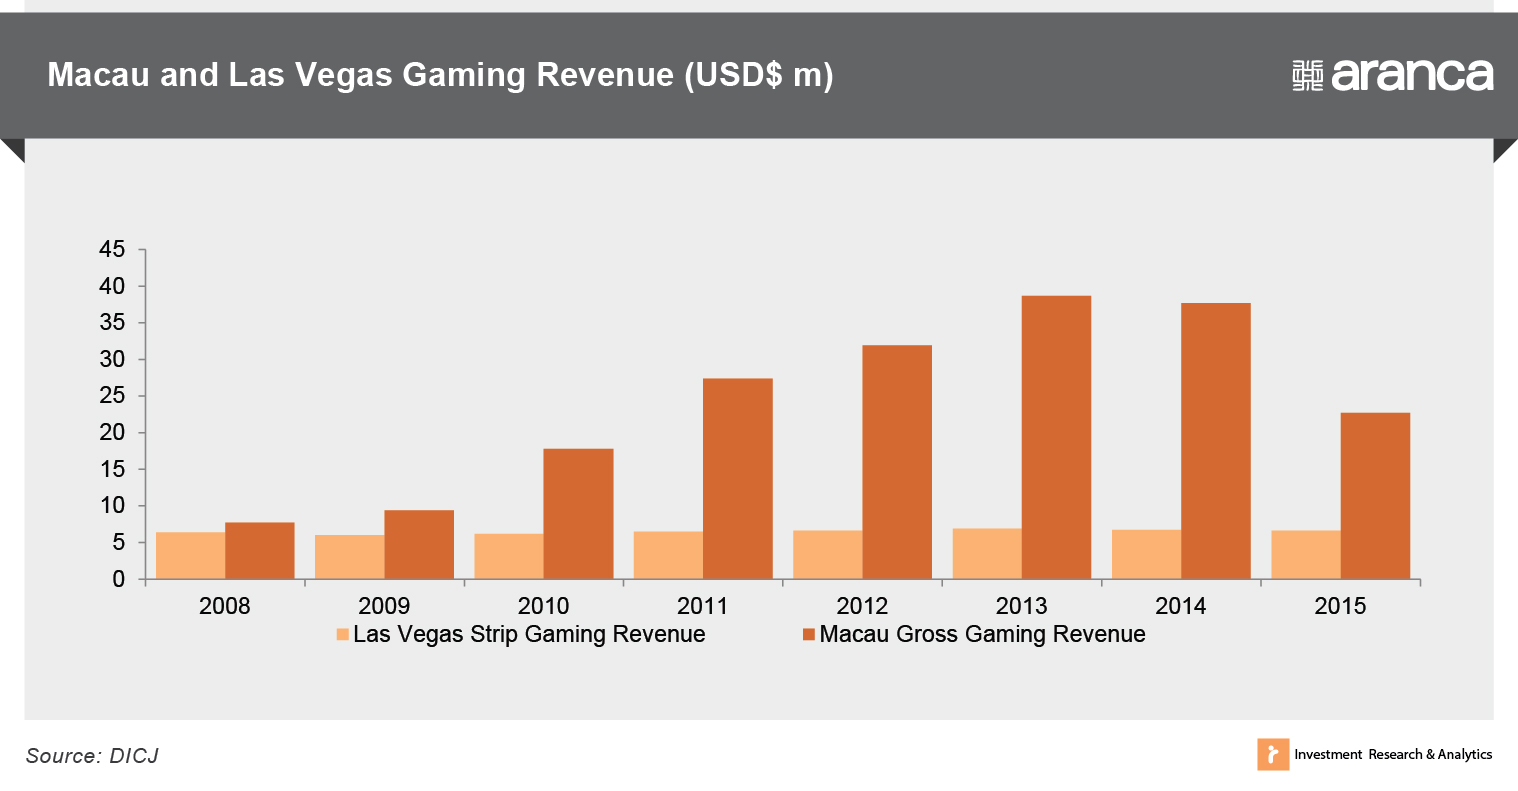 Macau and Las Vegas gaming revenue (USD$ m)